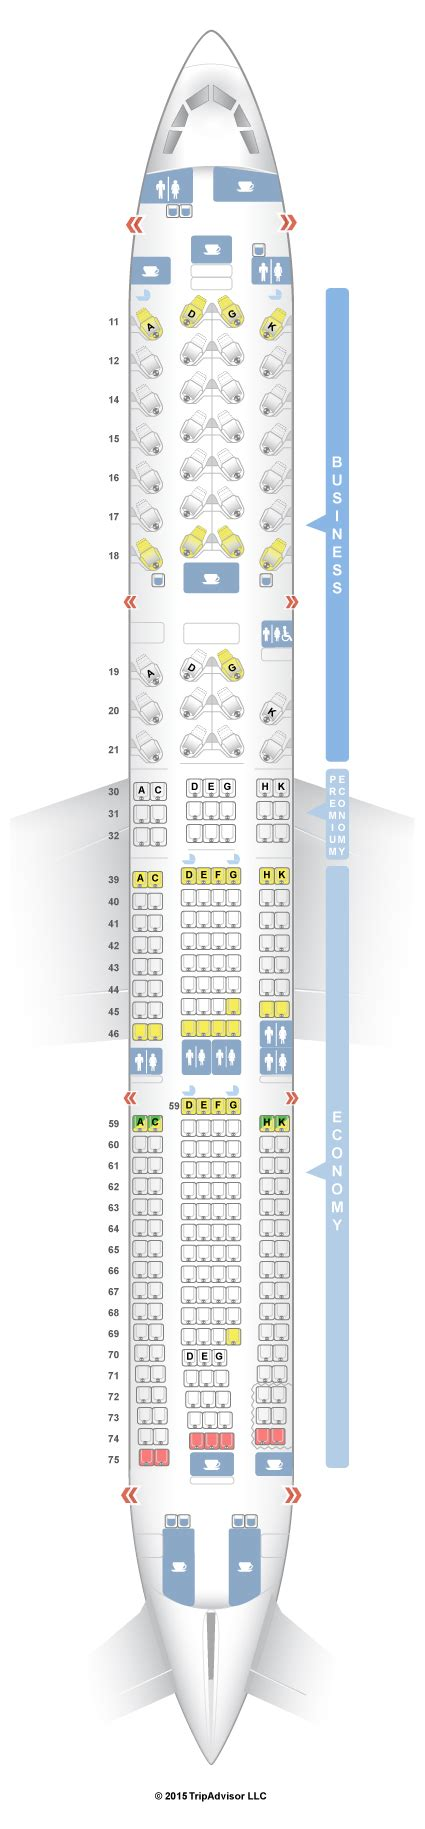 a330 seat map cathay pacific seatguru seat map cathay pacific airbus a330 300 33k